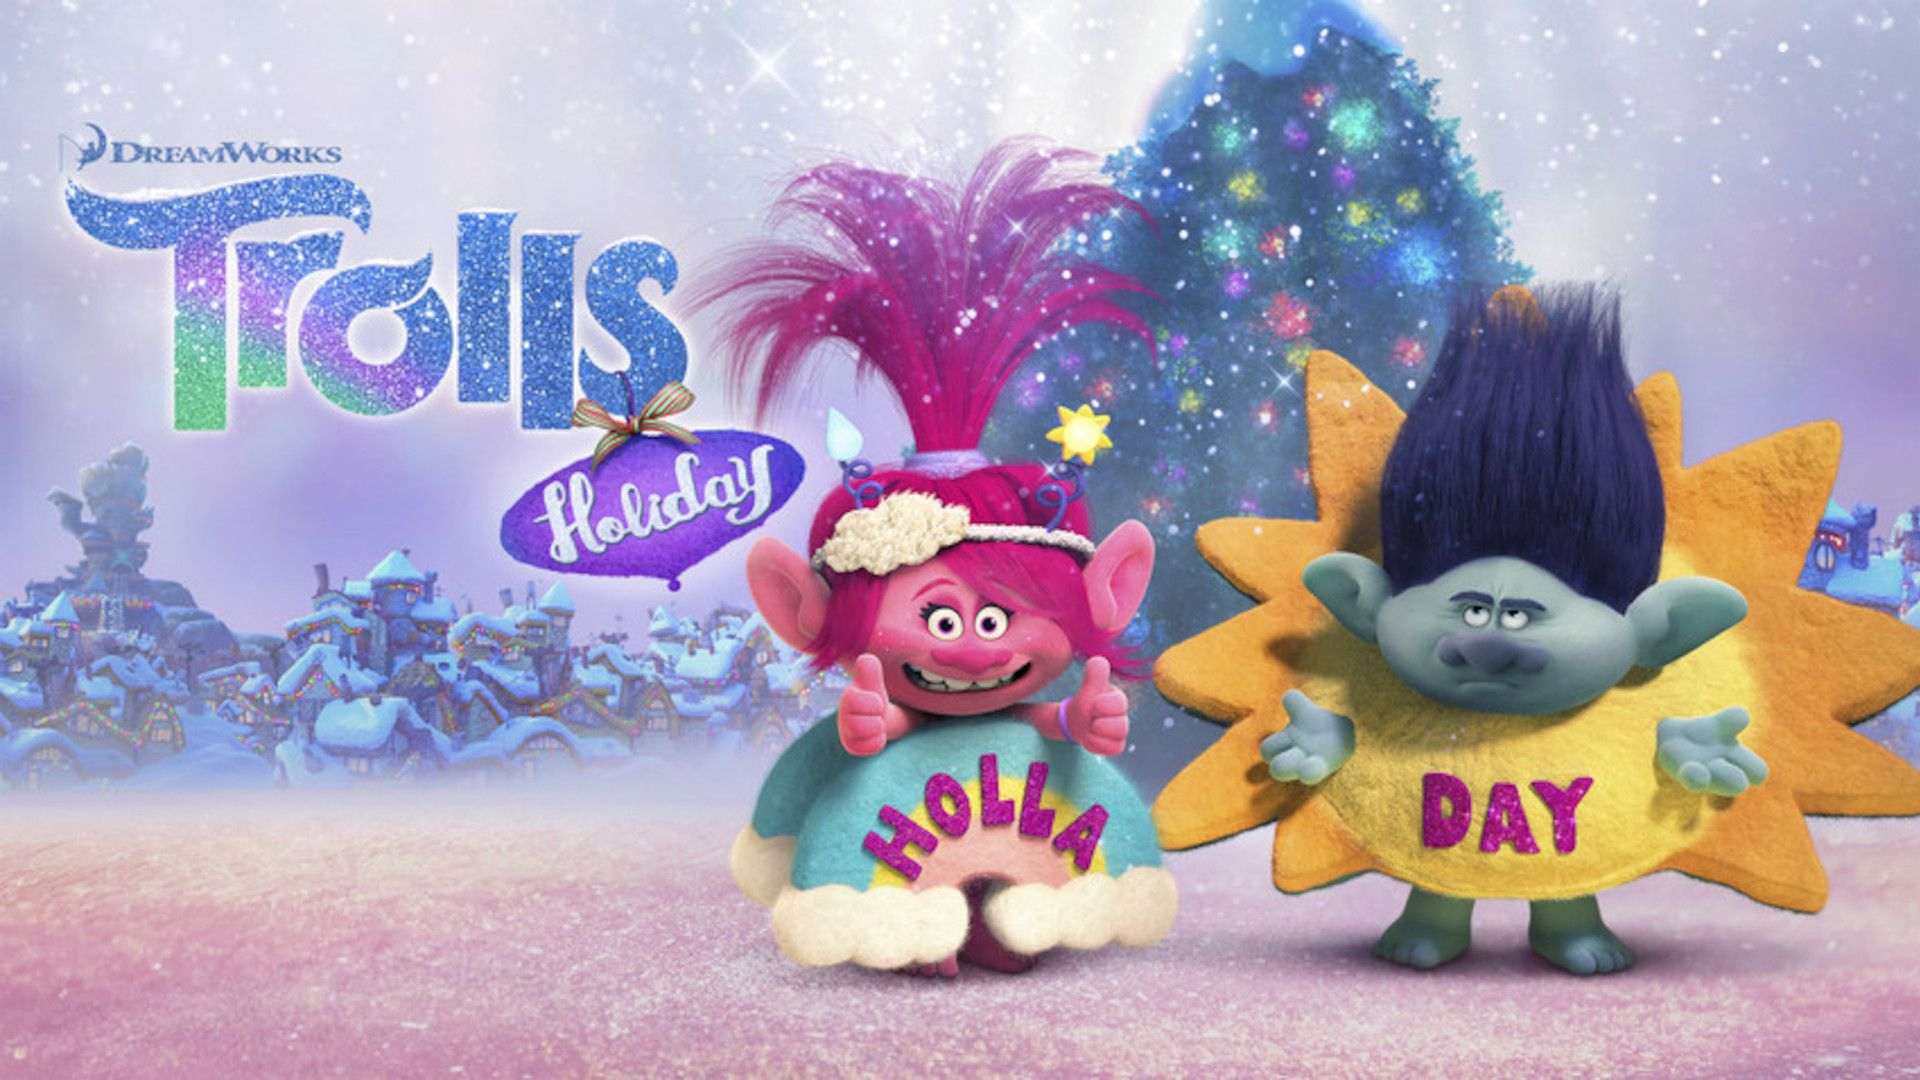 Photo for Dreamworks Trolls Holiday